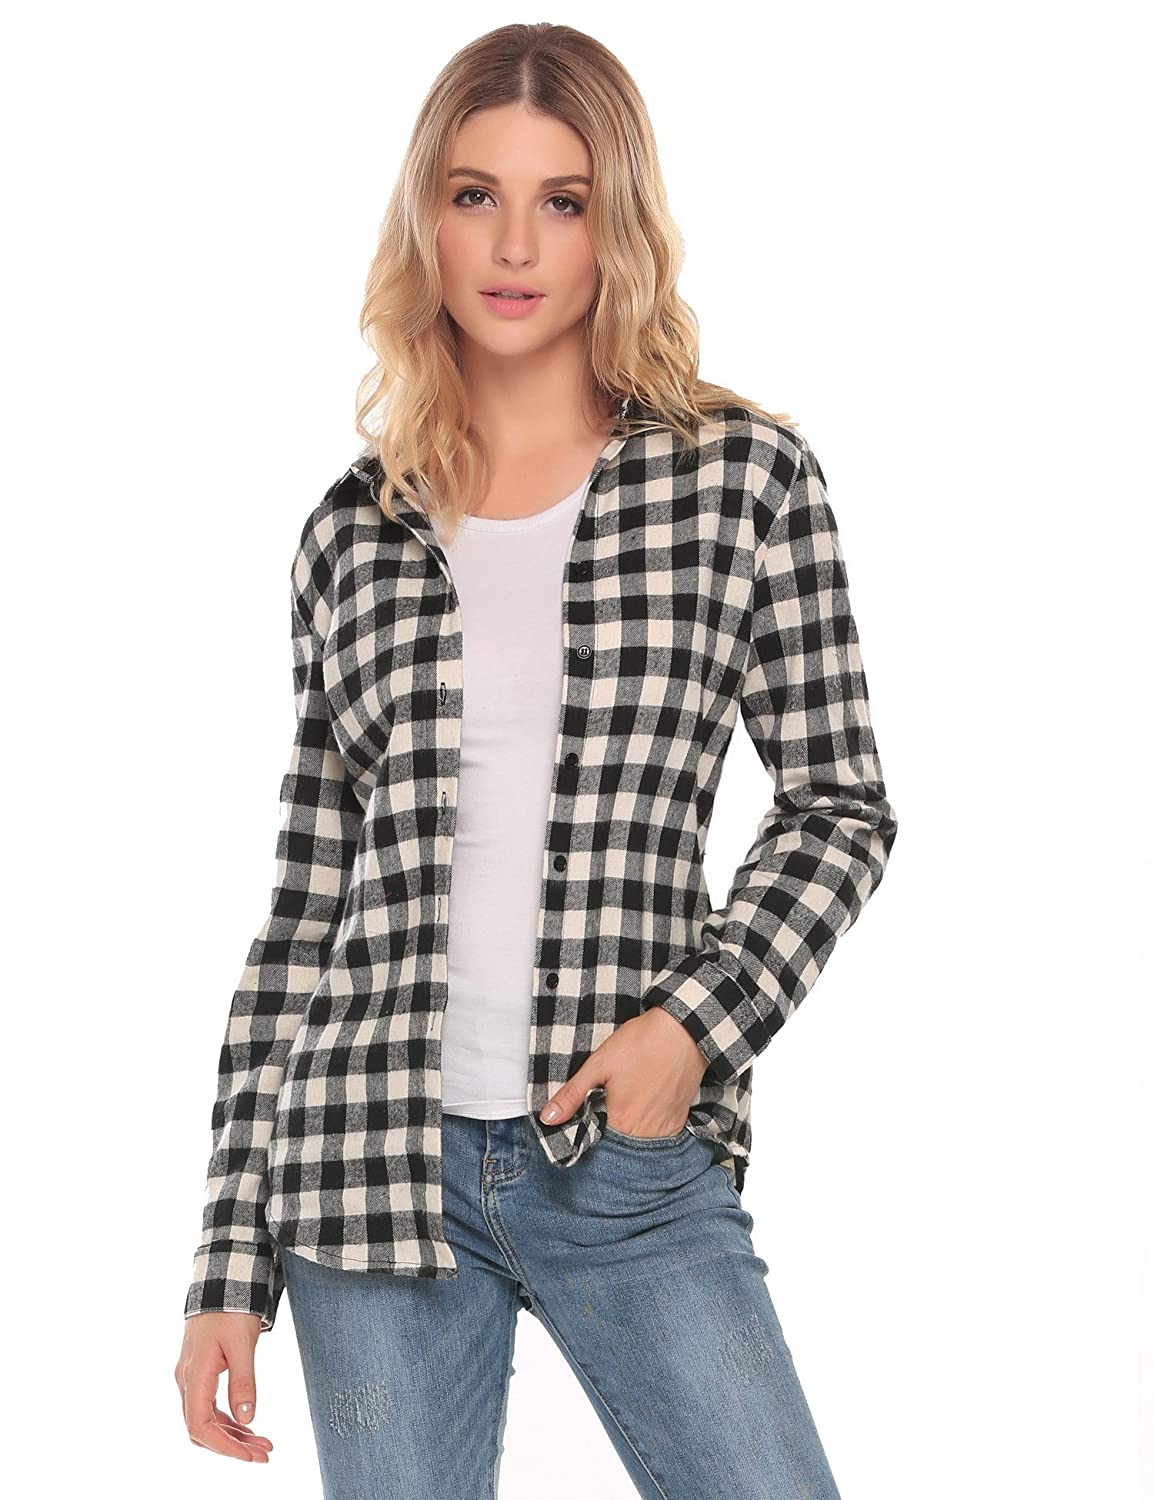 3dcbbdba The Plaid Flannel Shirt Features: Turn-Down Collar, Long Sleeve, Plaid  Pattern, Button Down Shirt.Wrinkle-Resistant, Button up ...